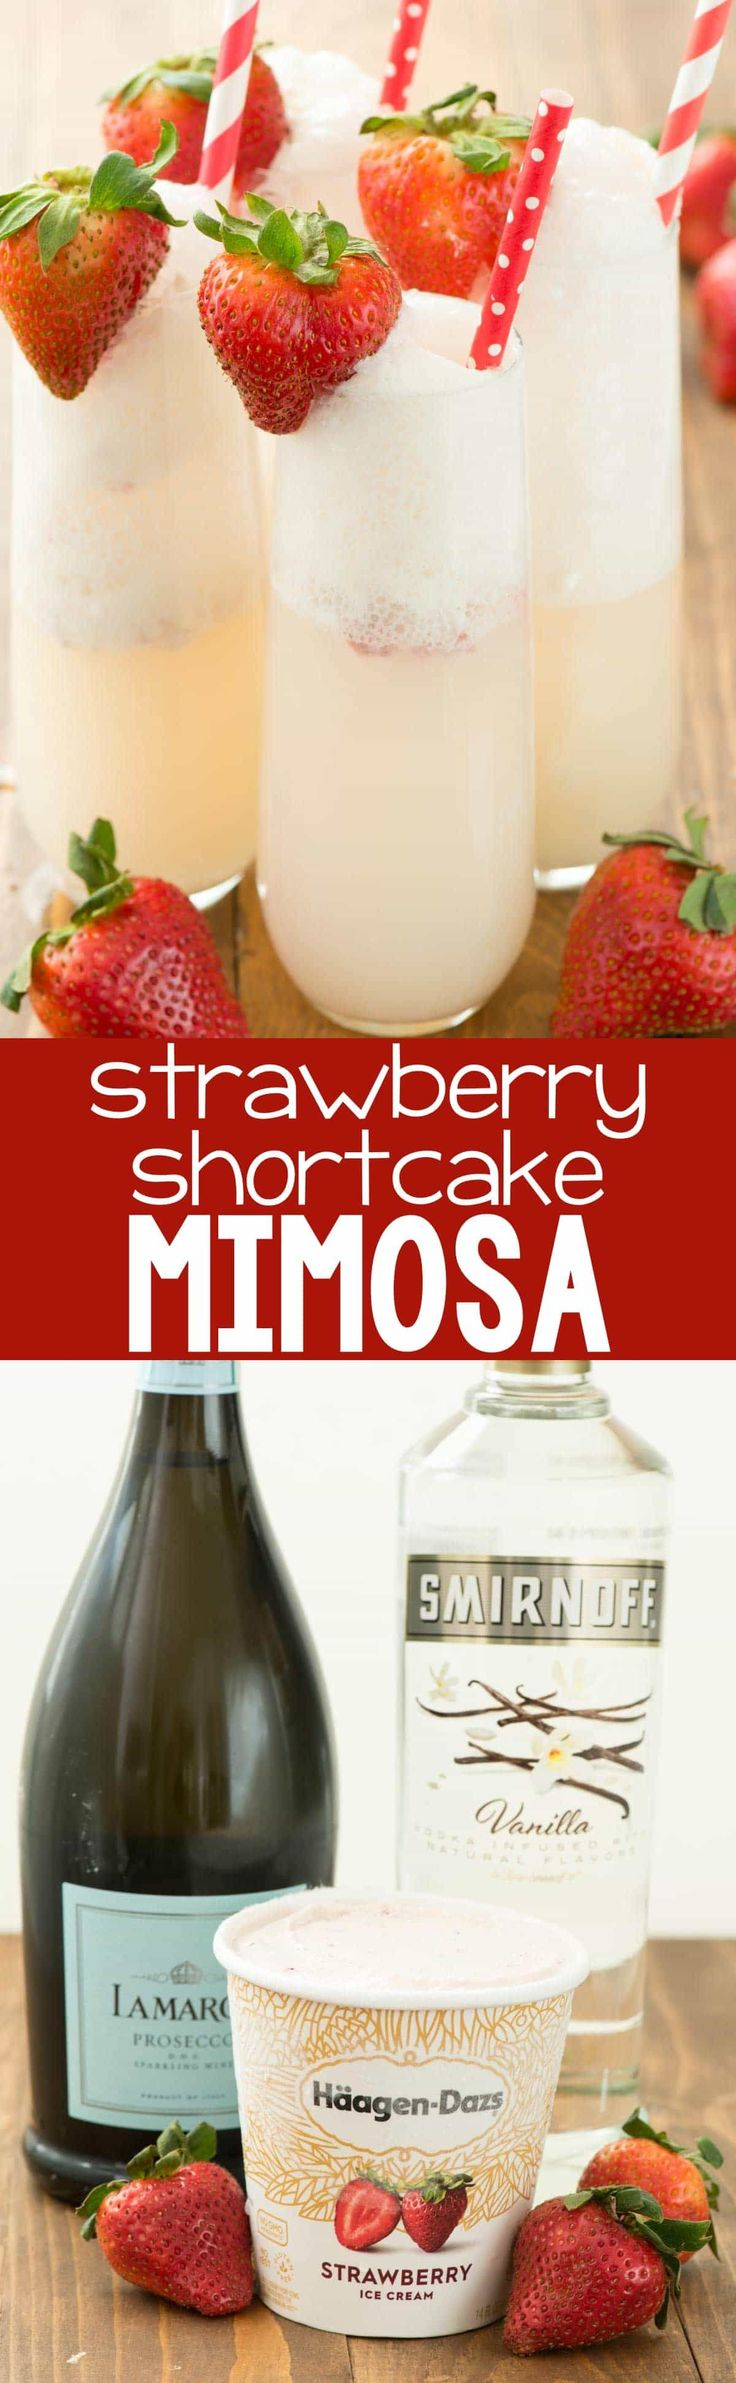 Strawberry Shortcake Mimosa - just three ingredients to the prettiest mimosa recipe ever! This champagne cocktail is perfect for brunch and can be made as a single cocktail or as a punch! #cocktailrecipes